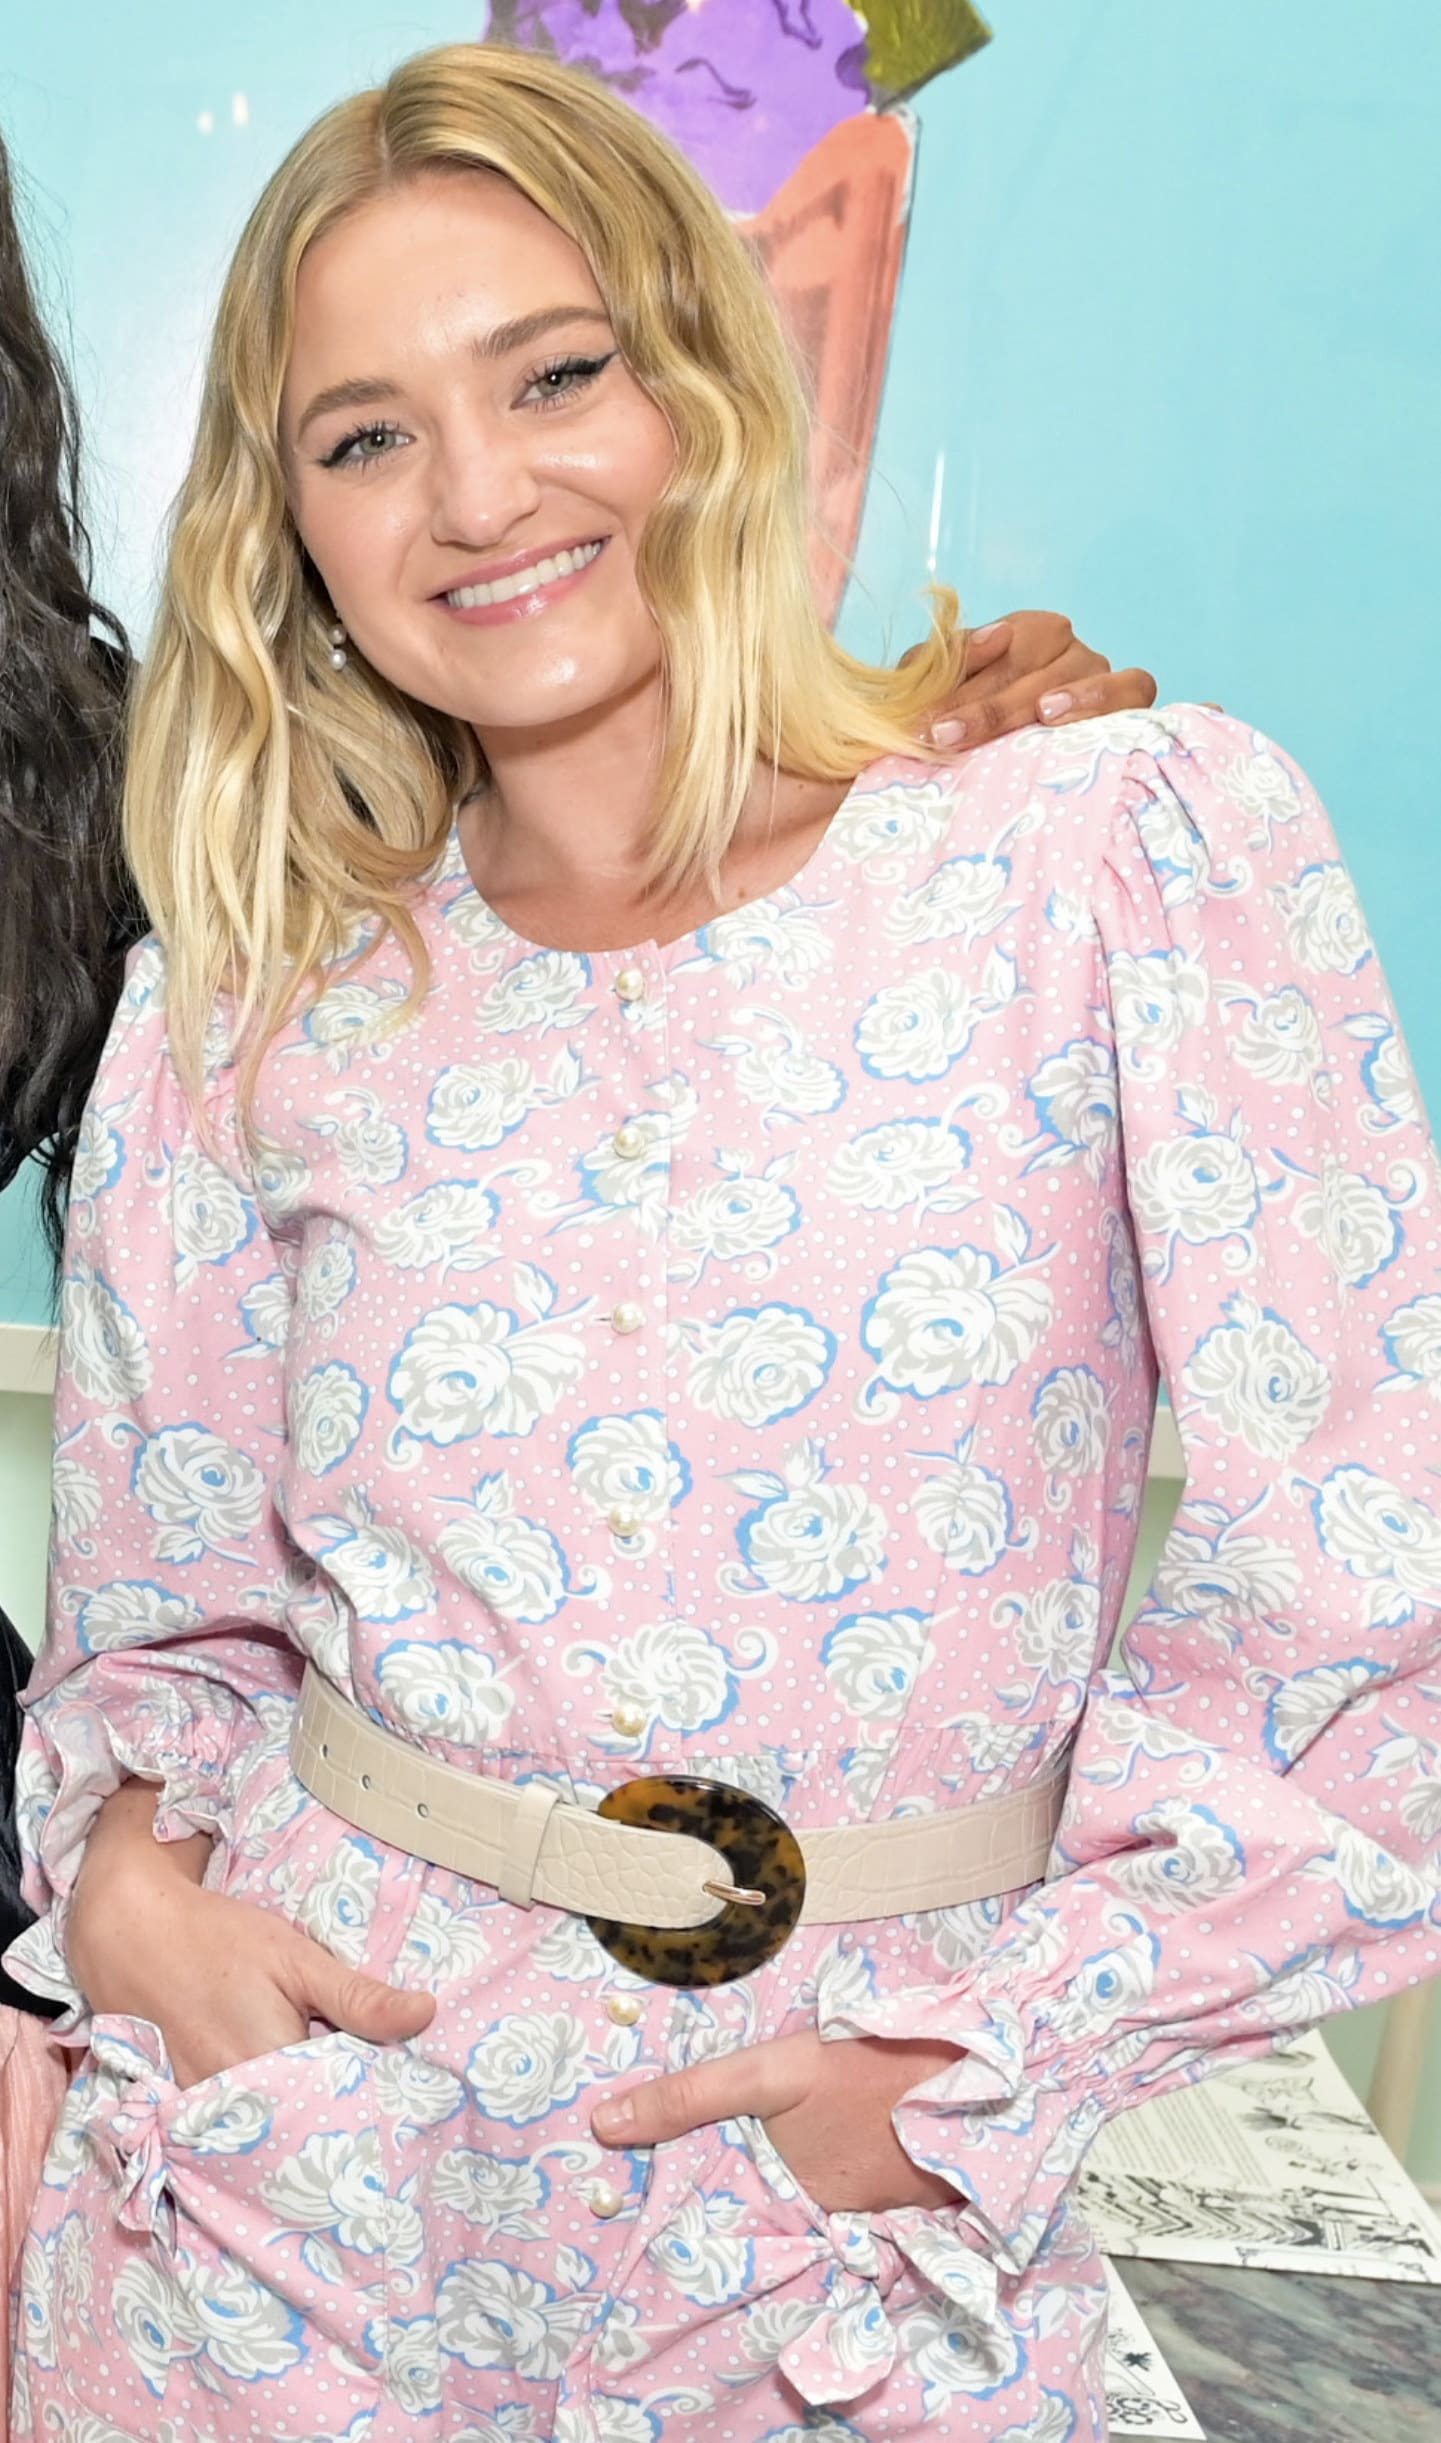 Michalka at a New York Fashion Week event in 2021